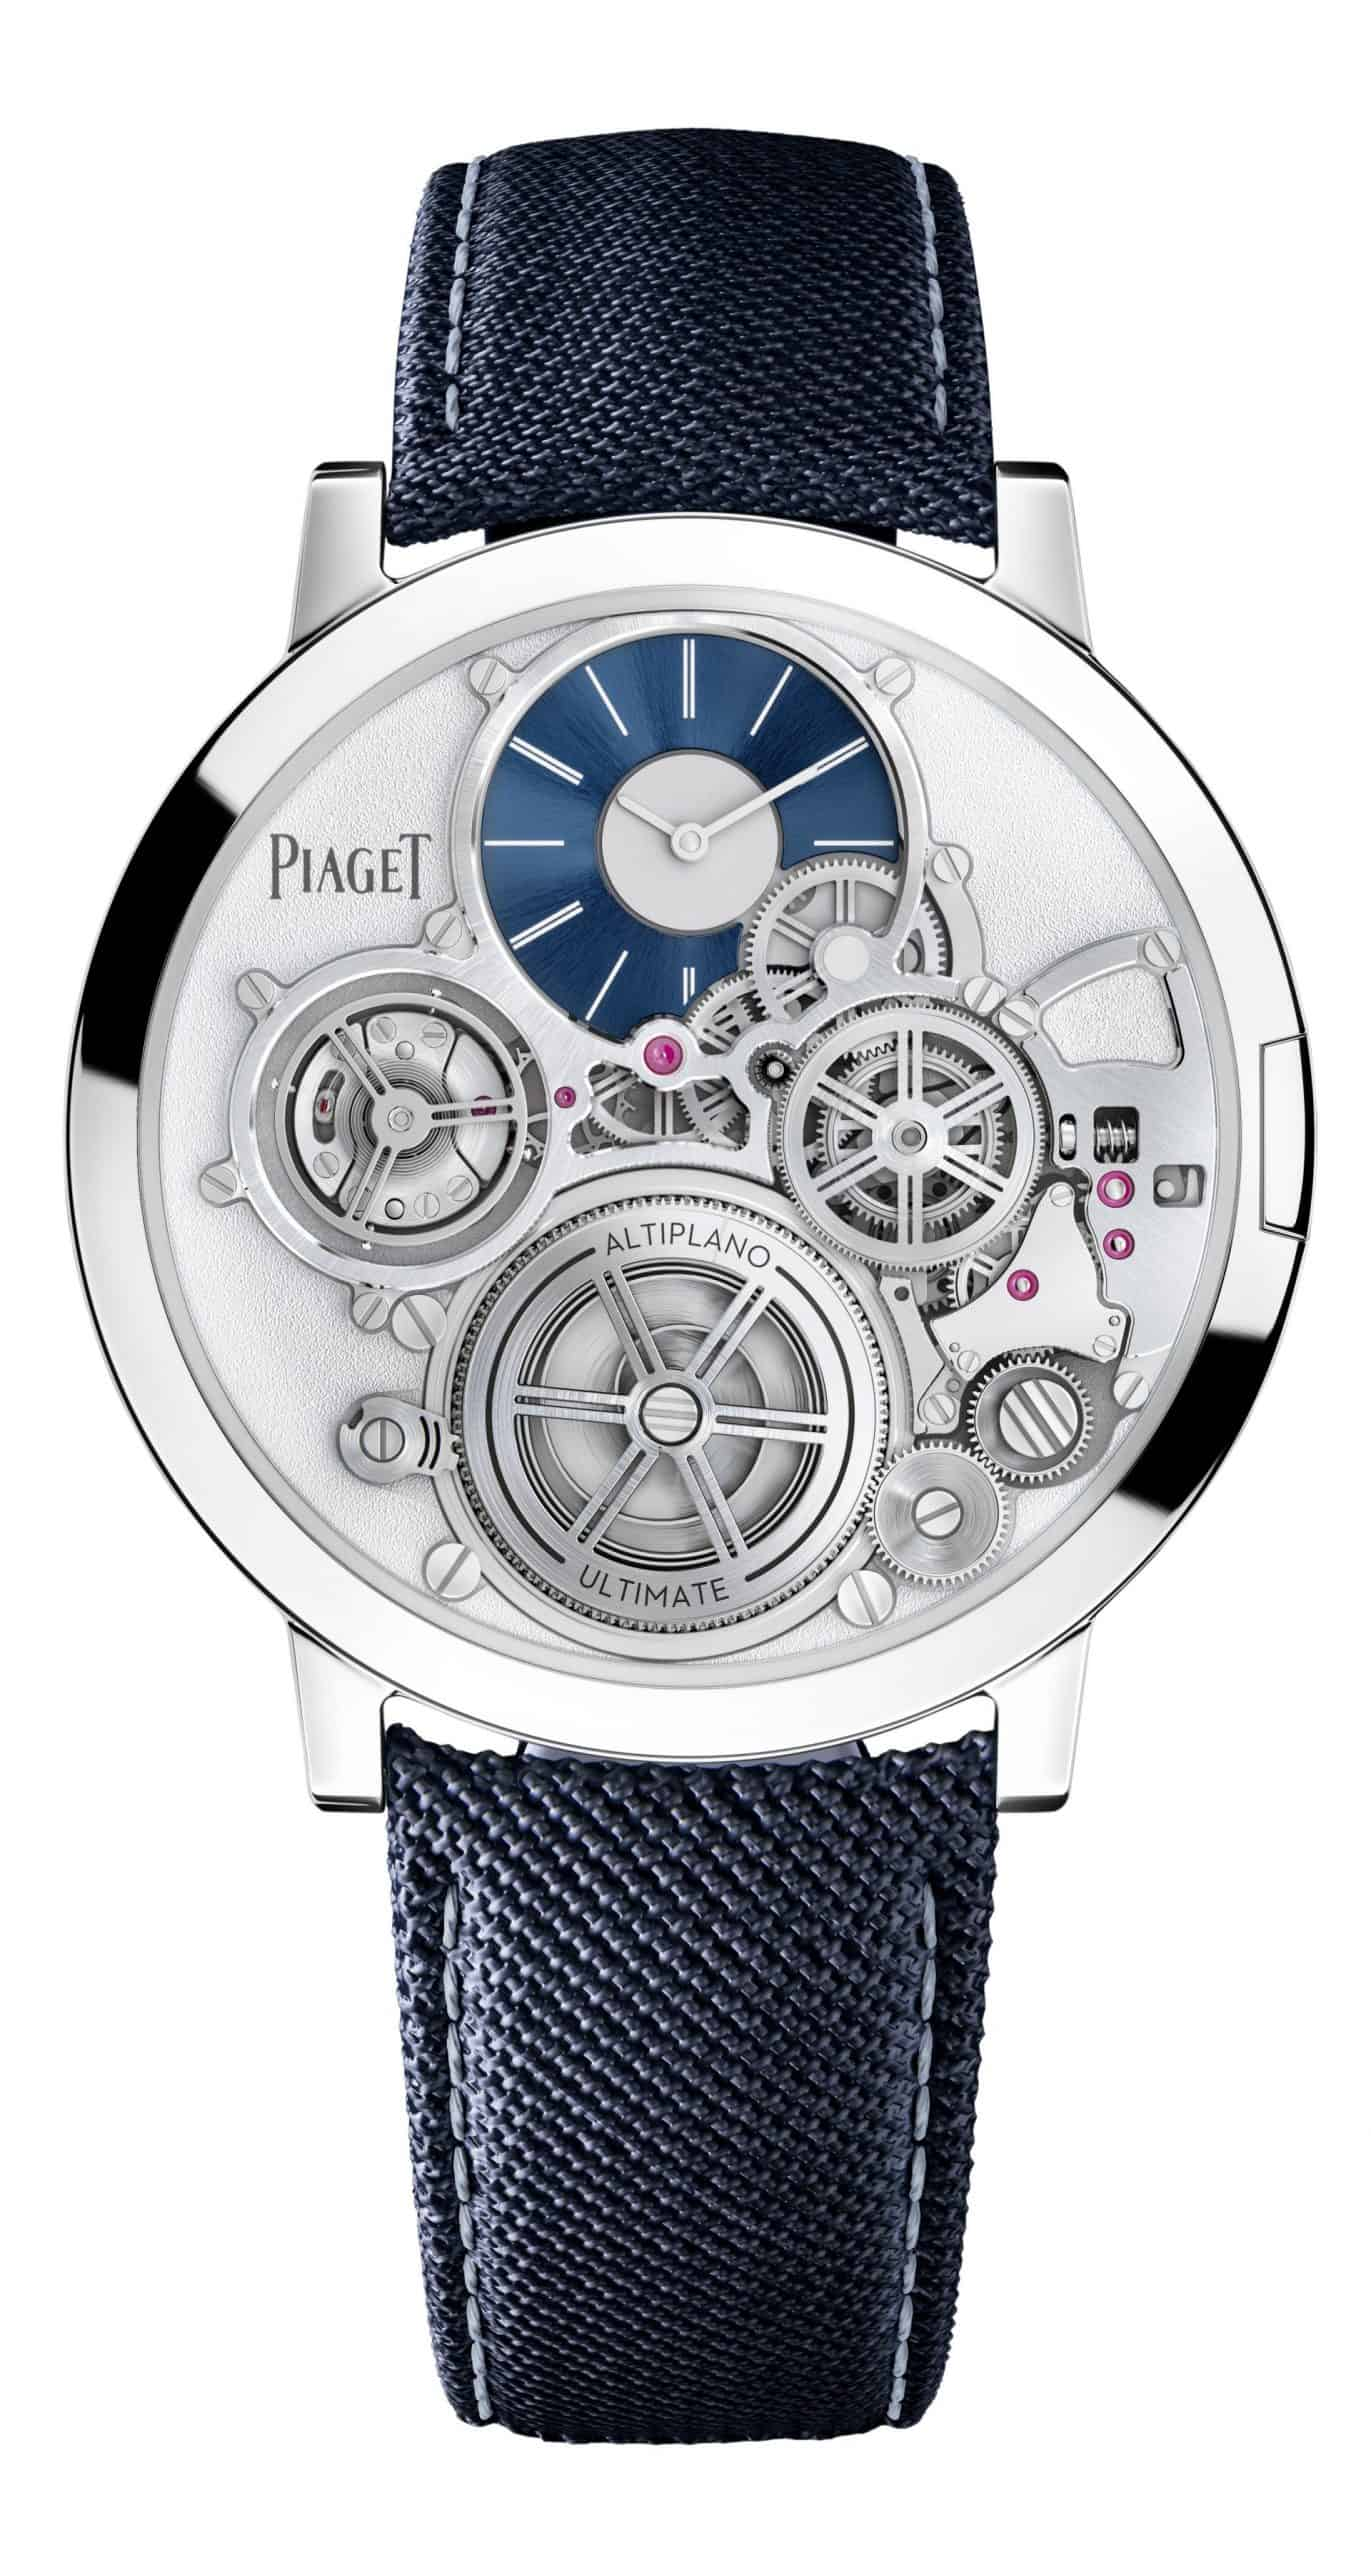 "In Silber - Piaget ""Altiplano Ultimate Concept"" Referenz G0A45501"